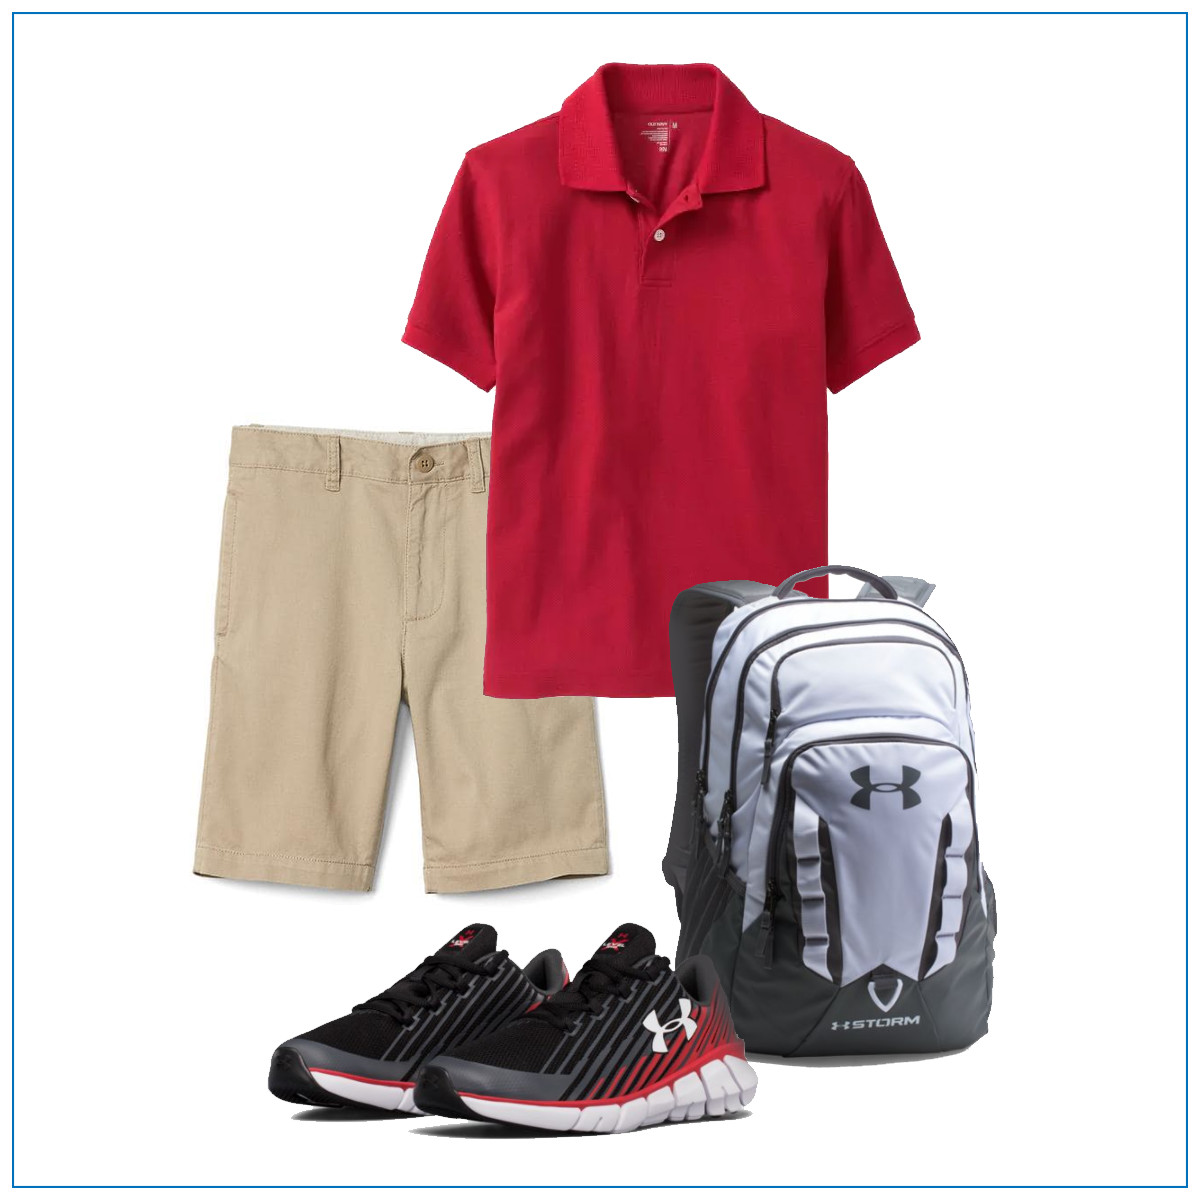 Boys' Back-to-School Outfit Uniforms